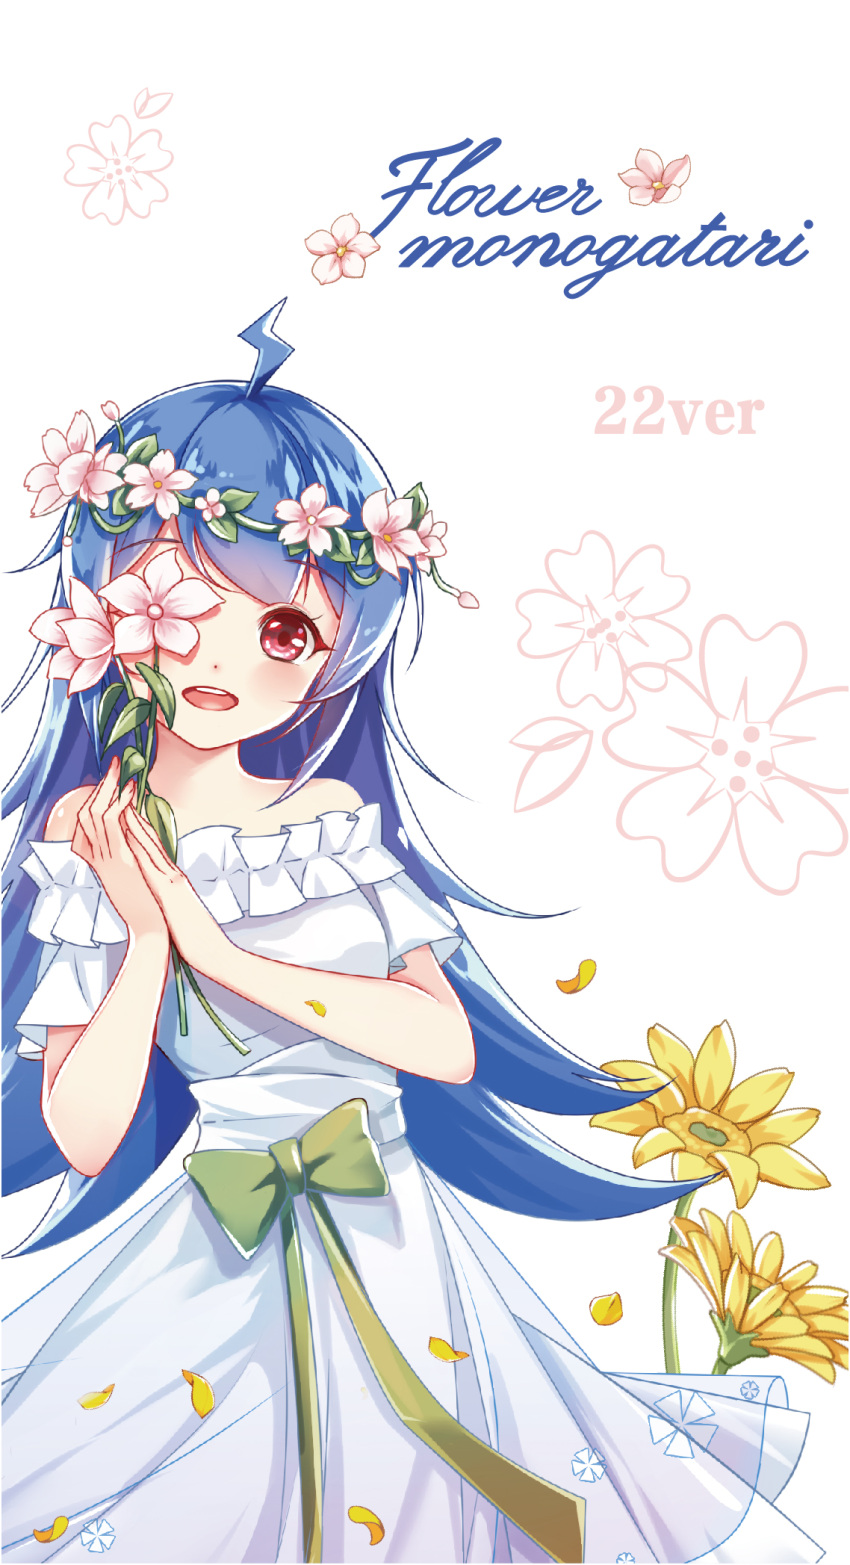 1girl :d ahoge bare_shoulders bili_girl_22 bilibili_douga blue_hair blush bow clouble dress english_text flower flower_wreath green_bow head_tilt head_wreath highres holding holding_flower one_eye_covered open_mouth petals pink_flower red_eyes romaji_text round_teeth short_sleeves simple_background smile solo strapless strapless_dress teeth upper_teeth white_background white_dress yellow_flower